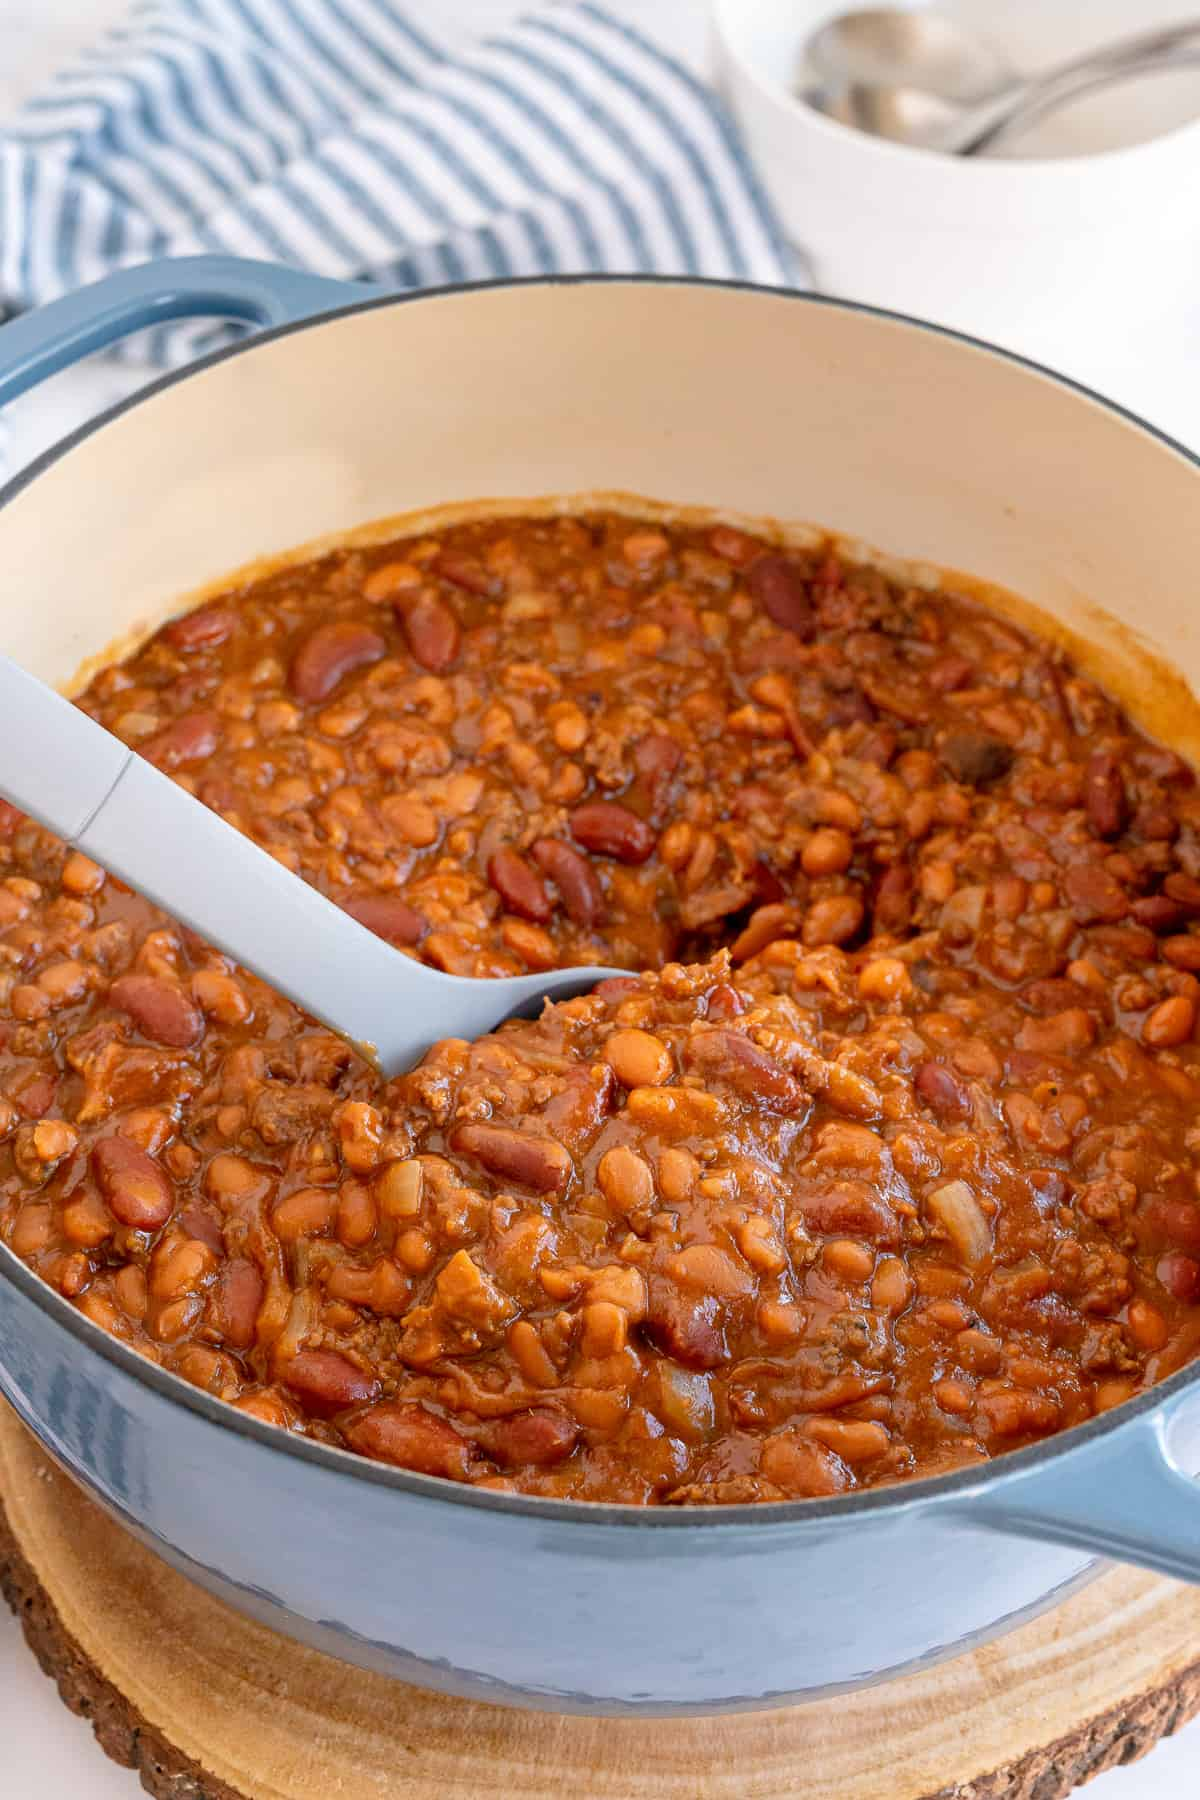 A spoon stirring baked beans in a Dutch oven.